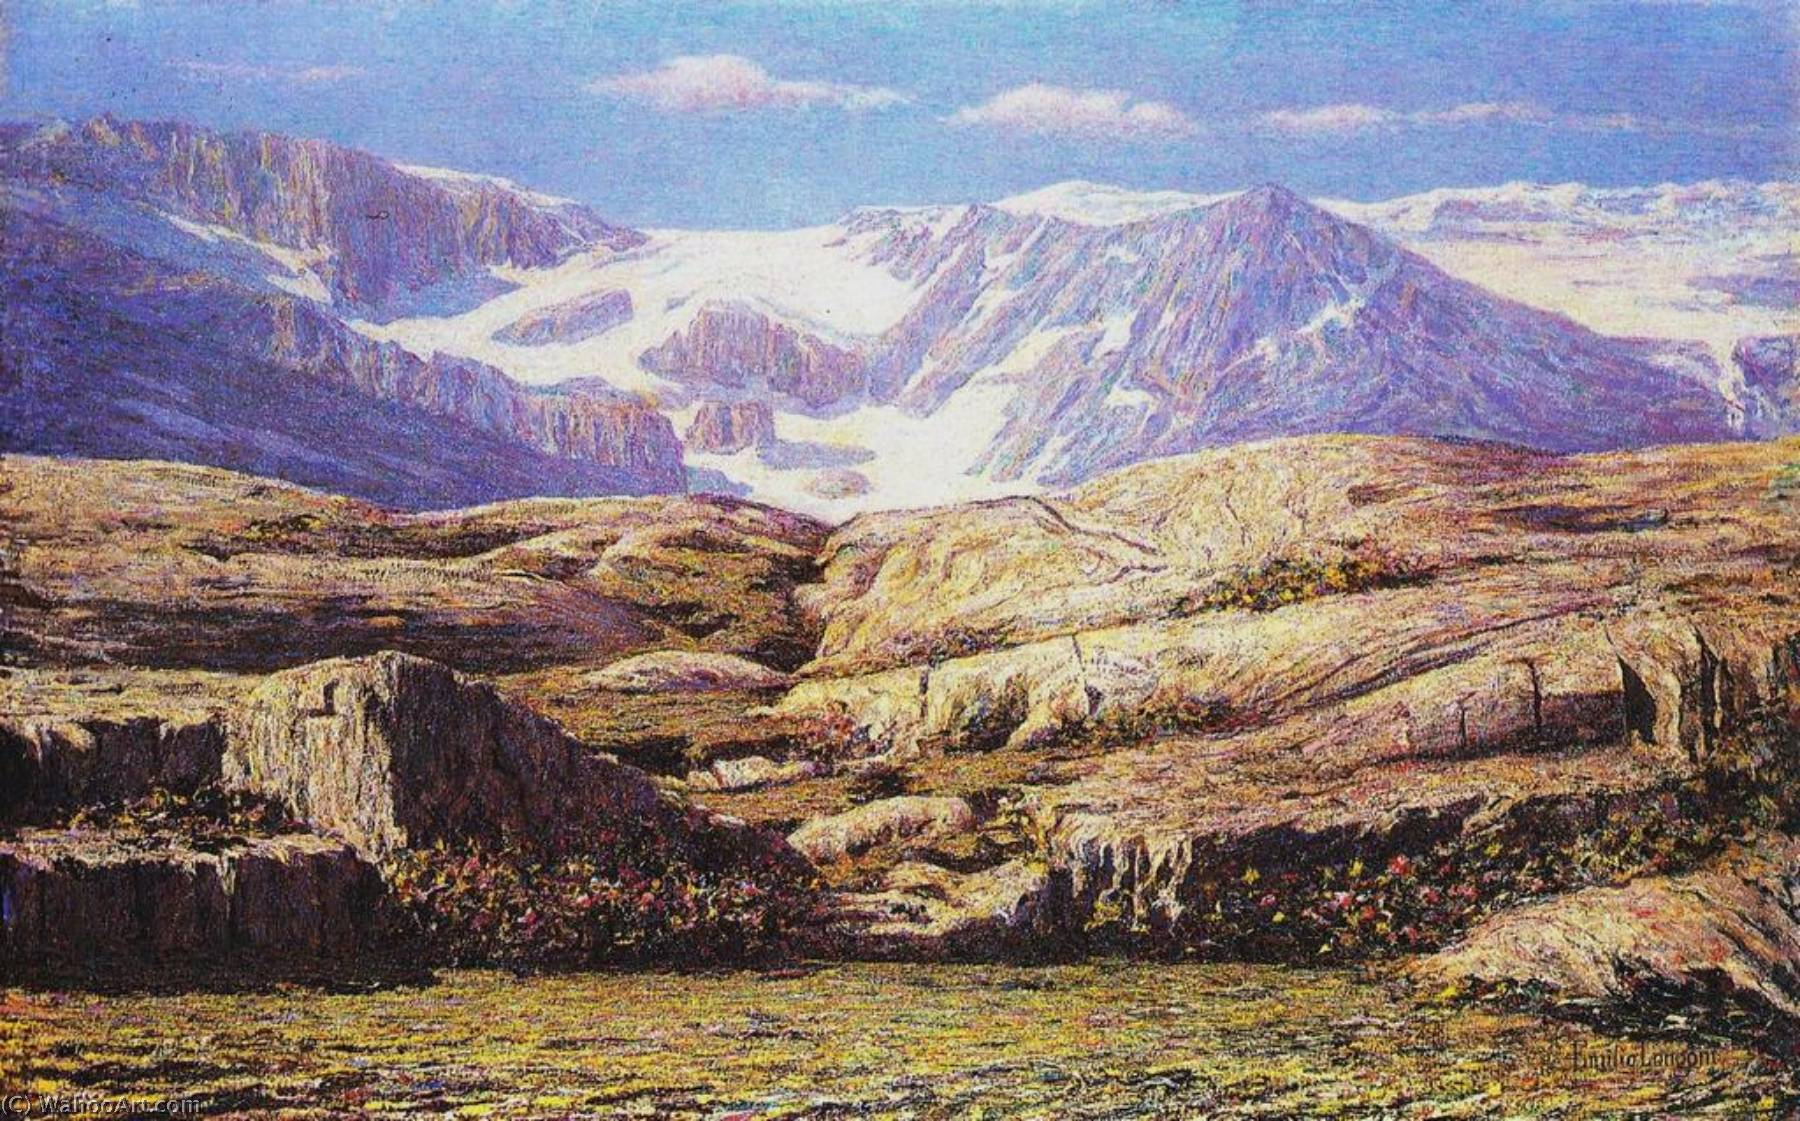 Glacier in the Sunlight, 1909 by Emilio Longoni (1859-1932) | WahooArt.com